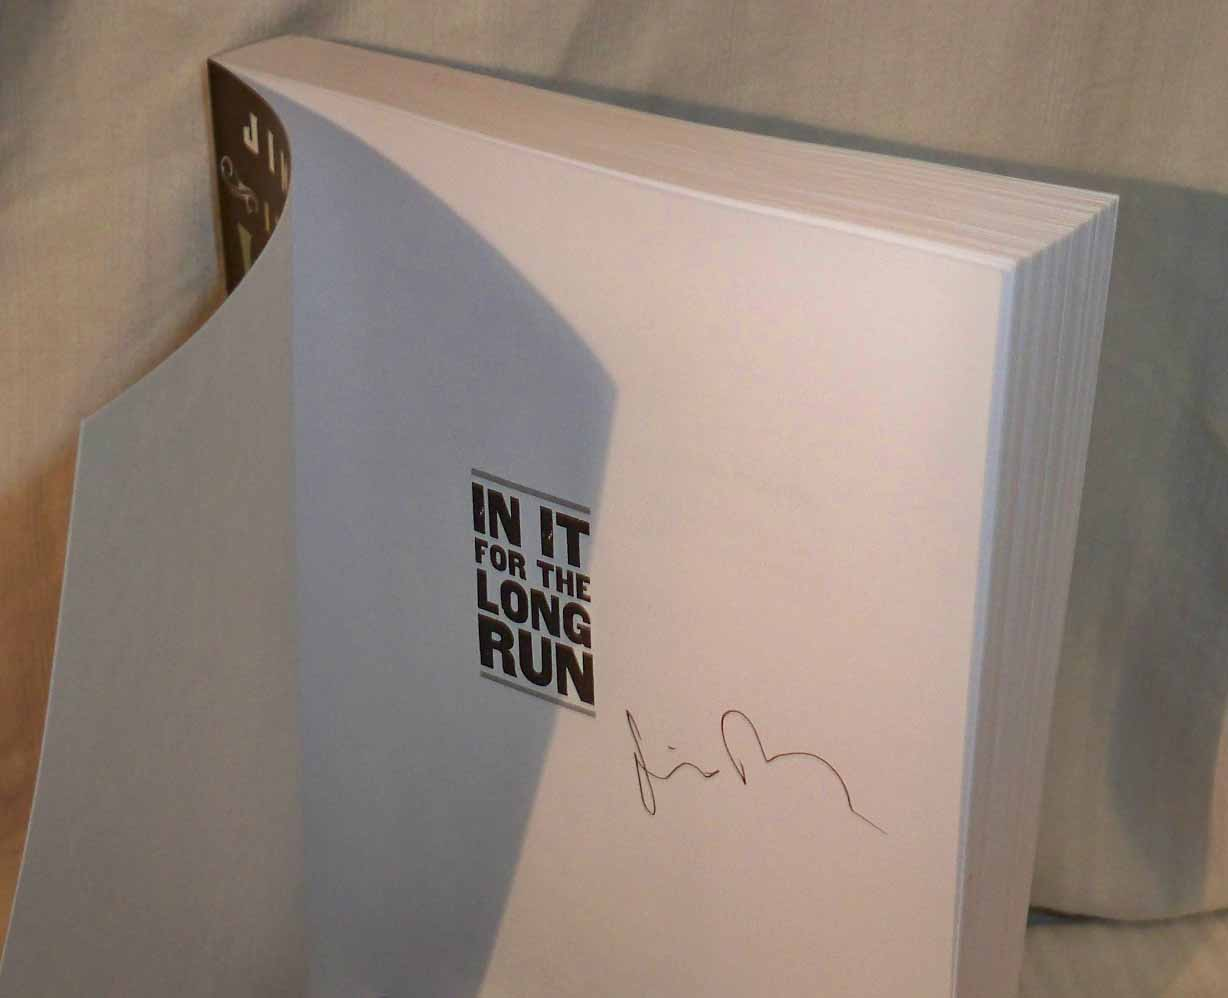 JIM ROONEY - In It For The Long Run SIGNED BOOK